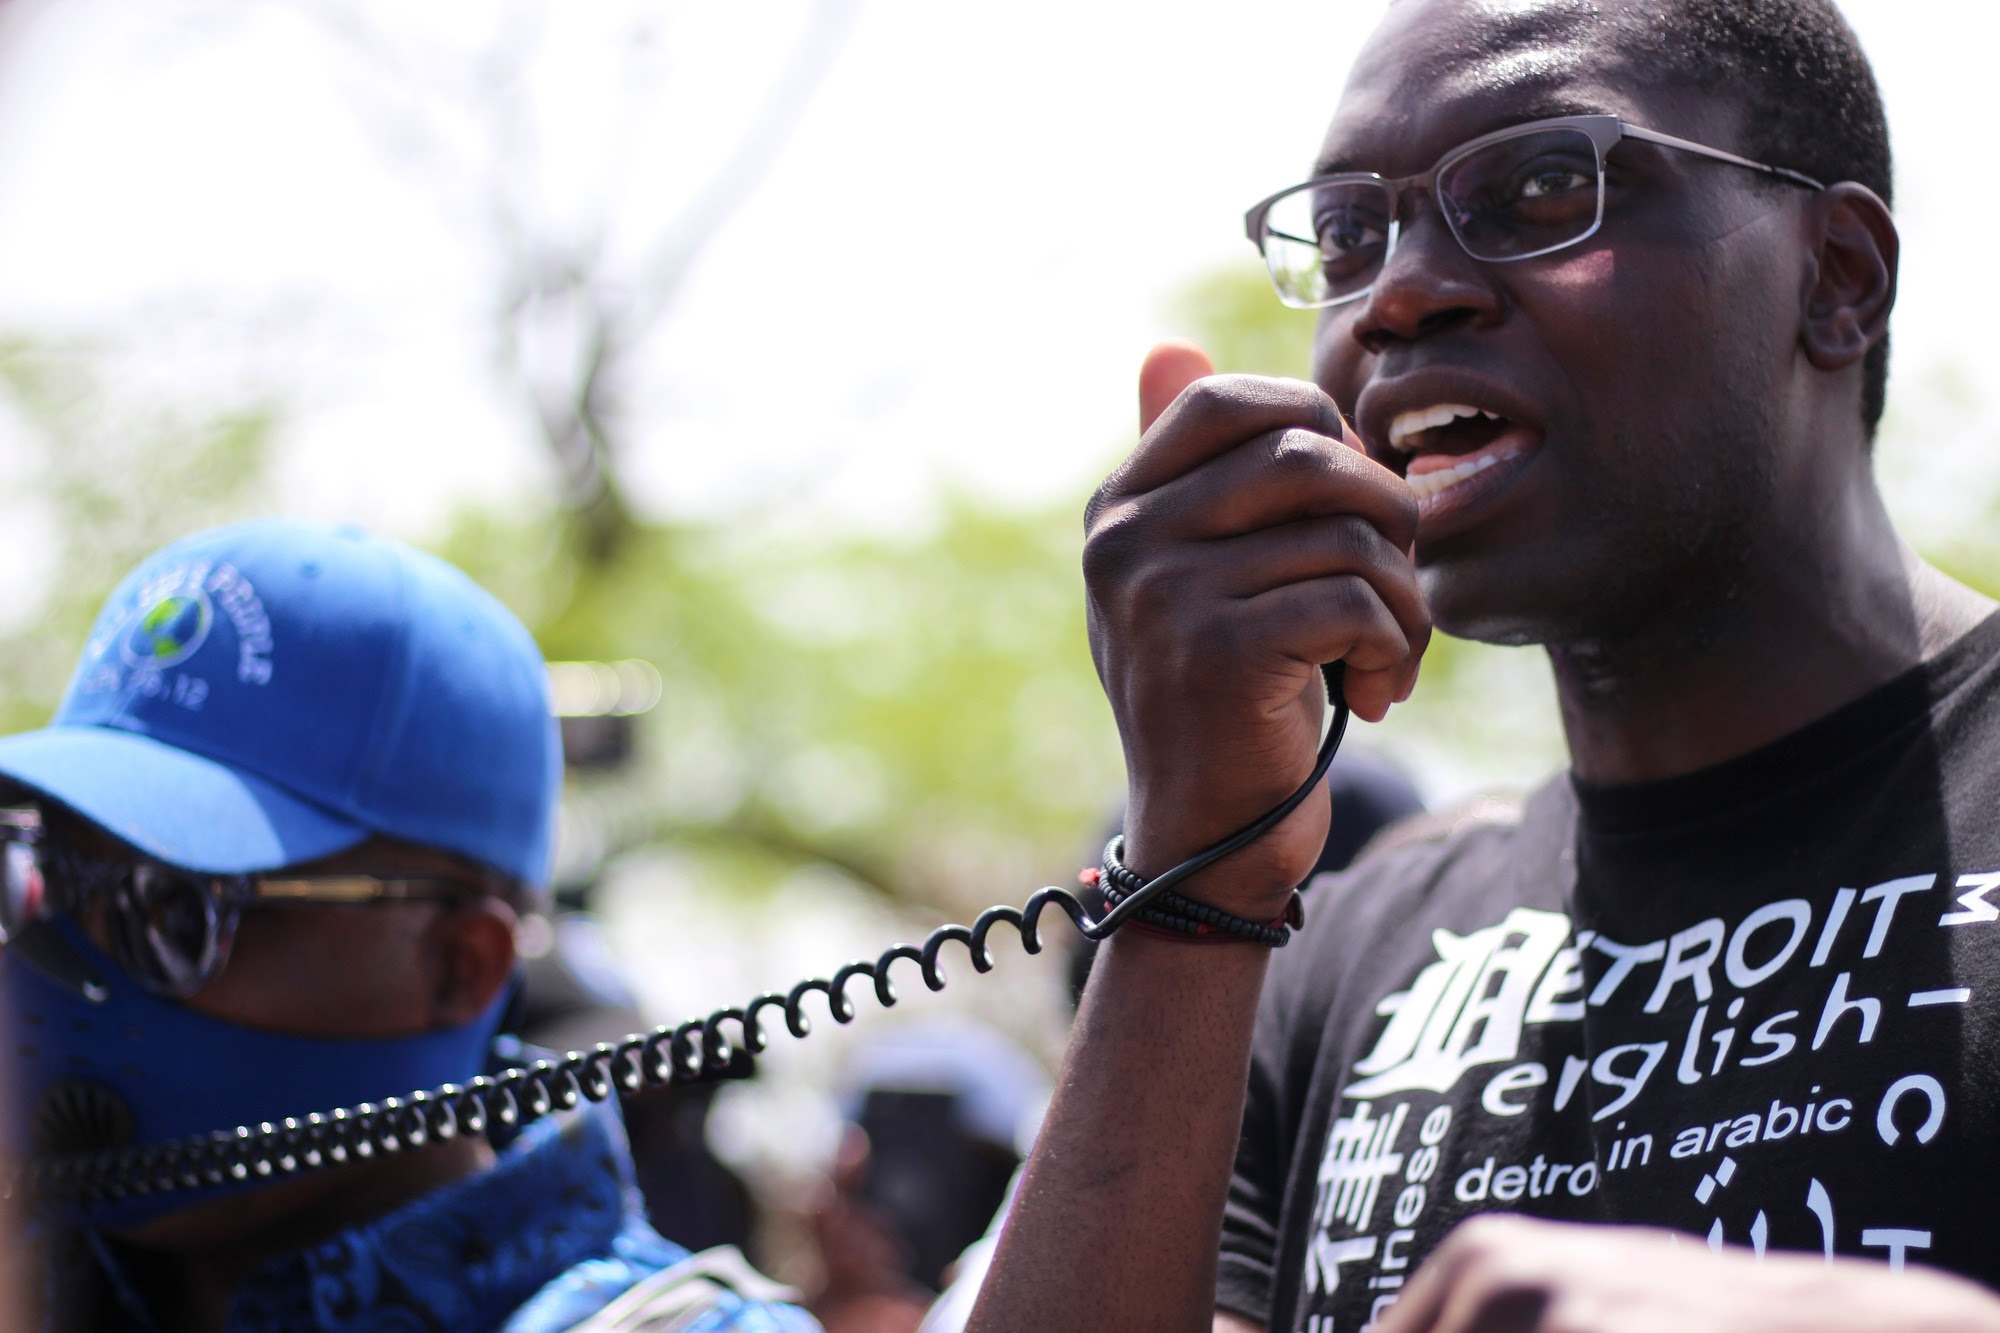 Dehumanized By Police At 16 Garlin Gilchrist Seeks Michigan Reforms Bridge Magazine